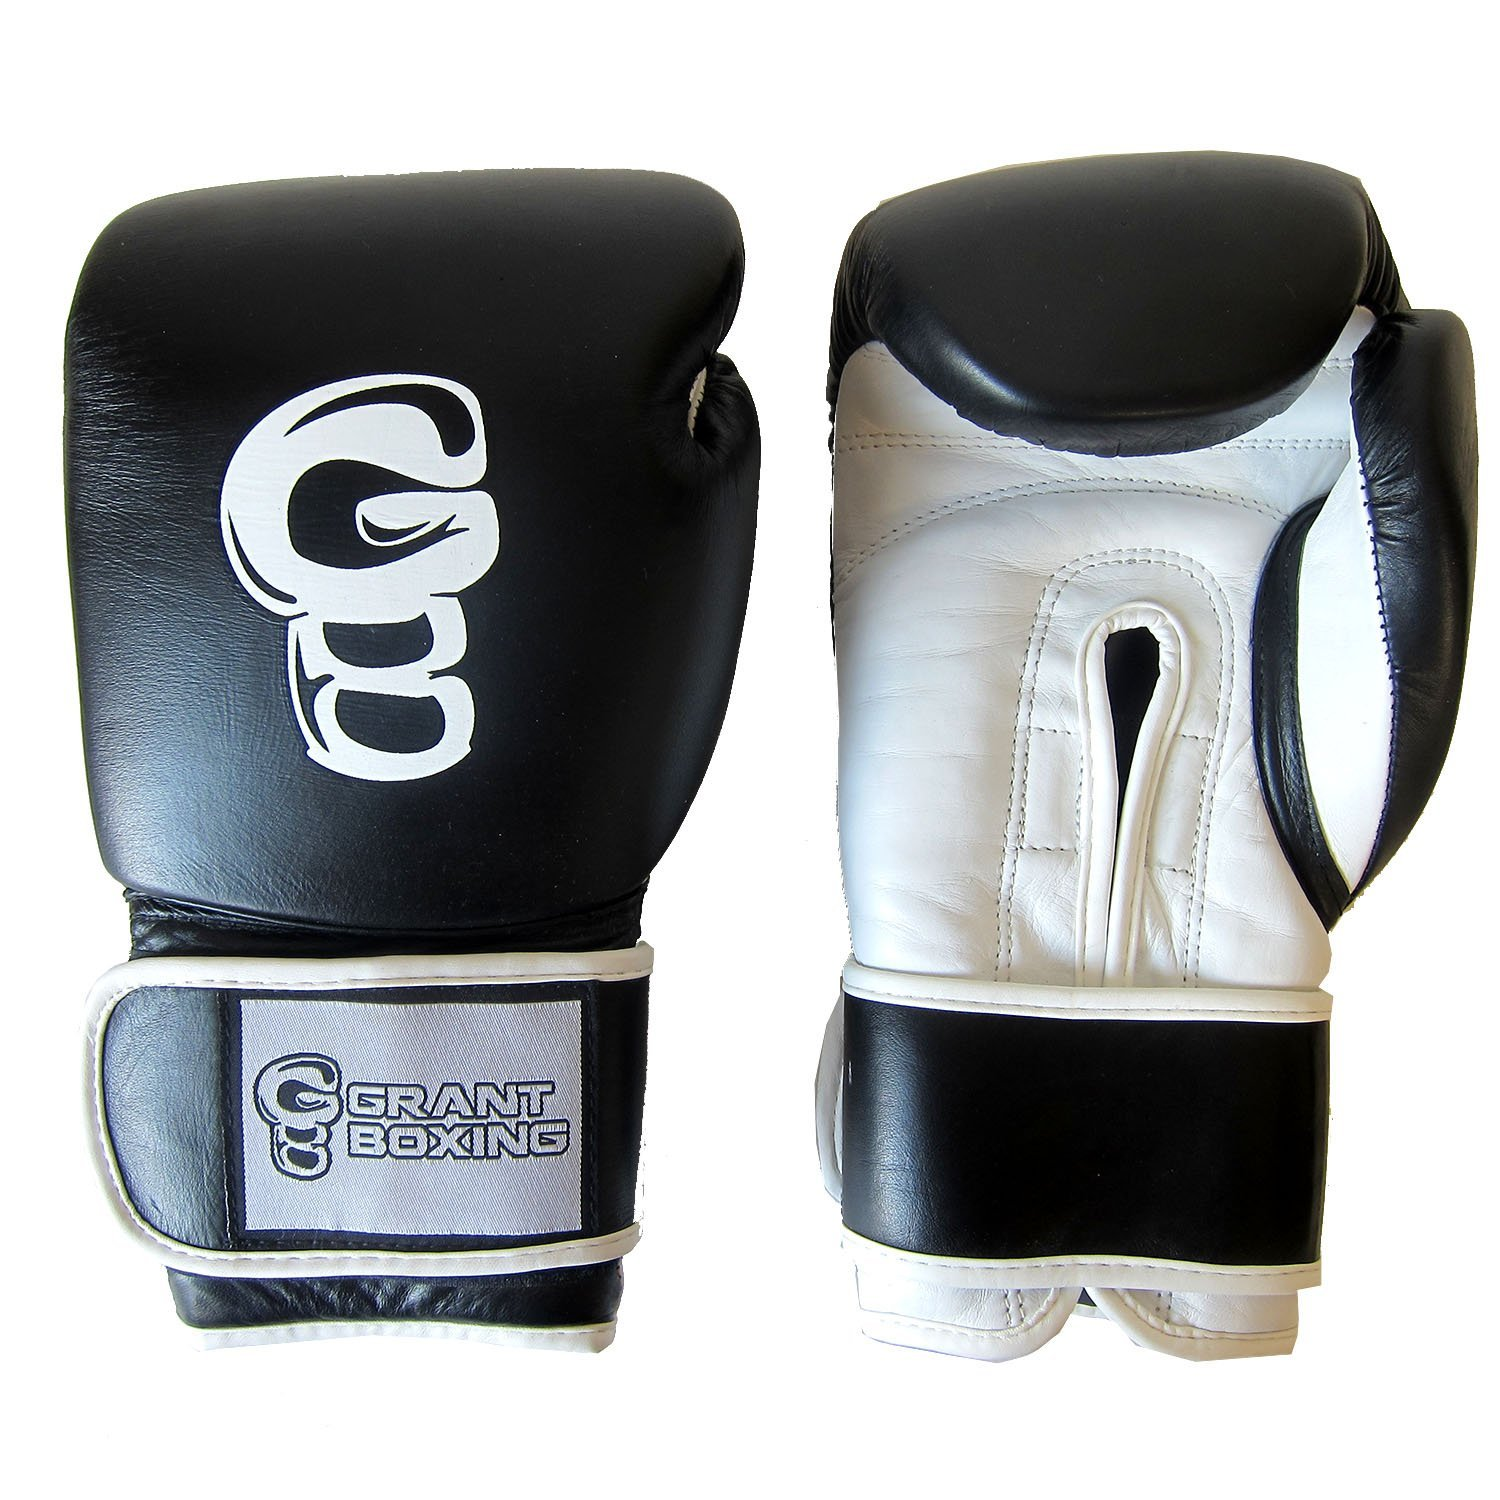 BAG GLOVES IN JAPANESE COMPOSITE (Black, medium) WITH GERMAN SAS-TEC TECHNOLOGY GRANT BOXING